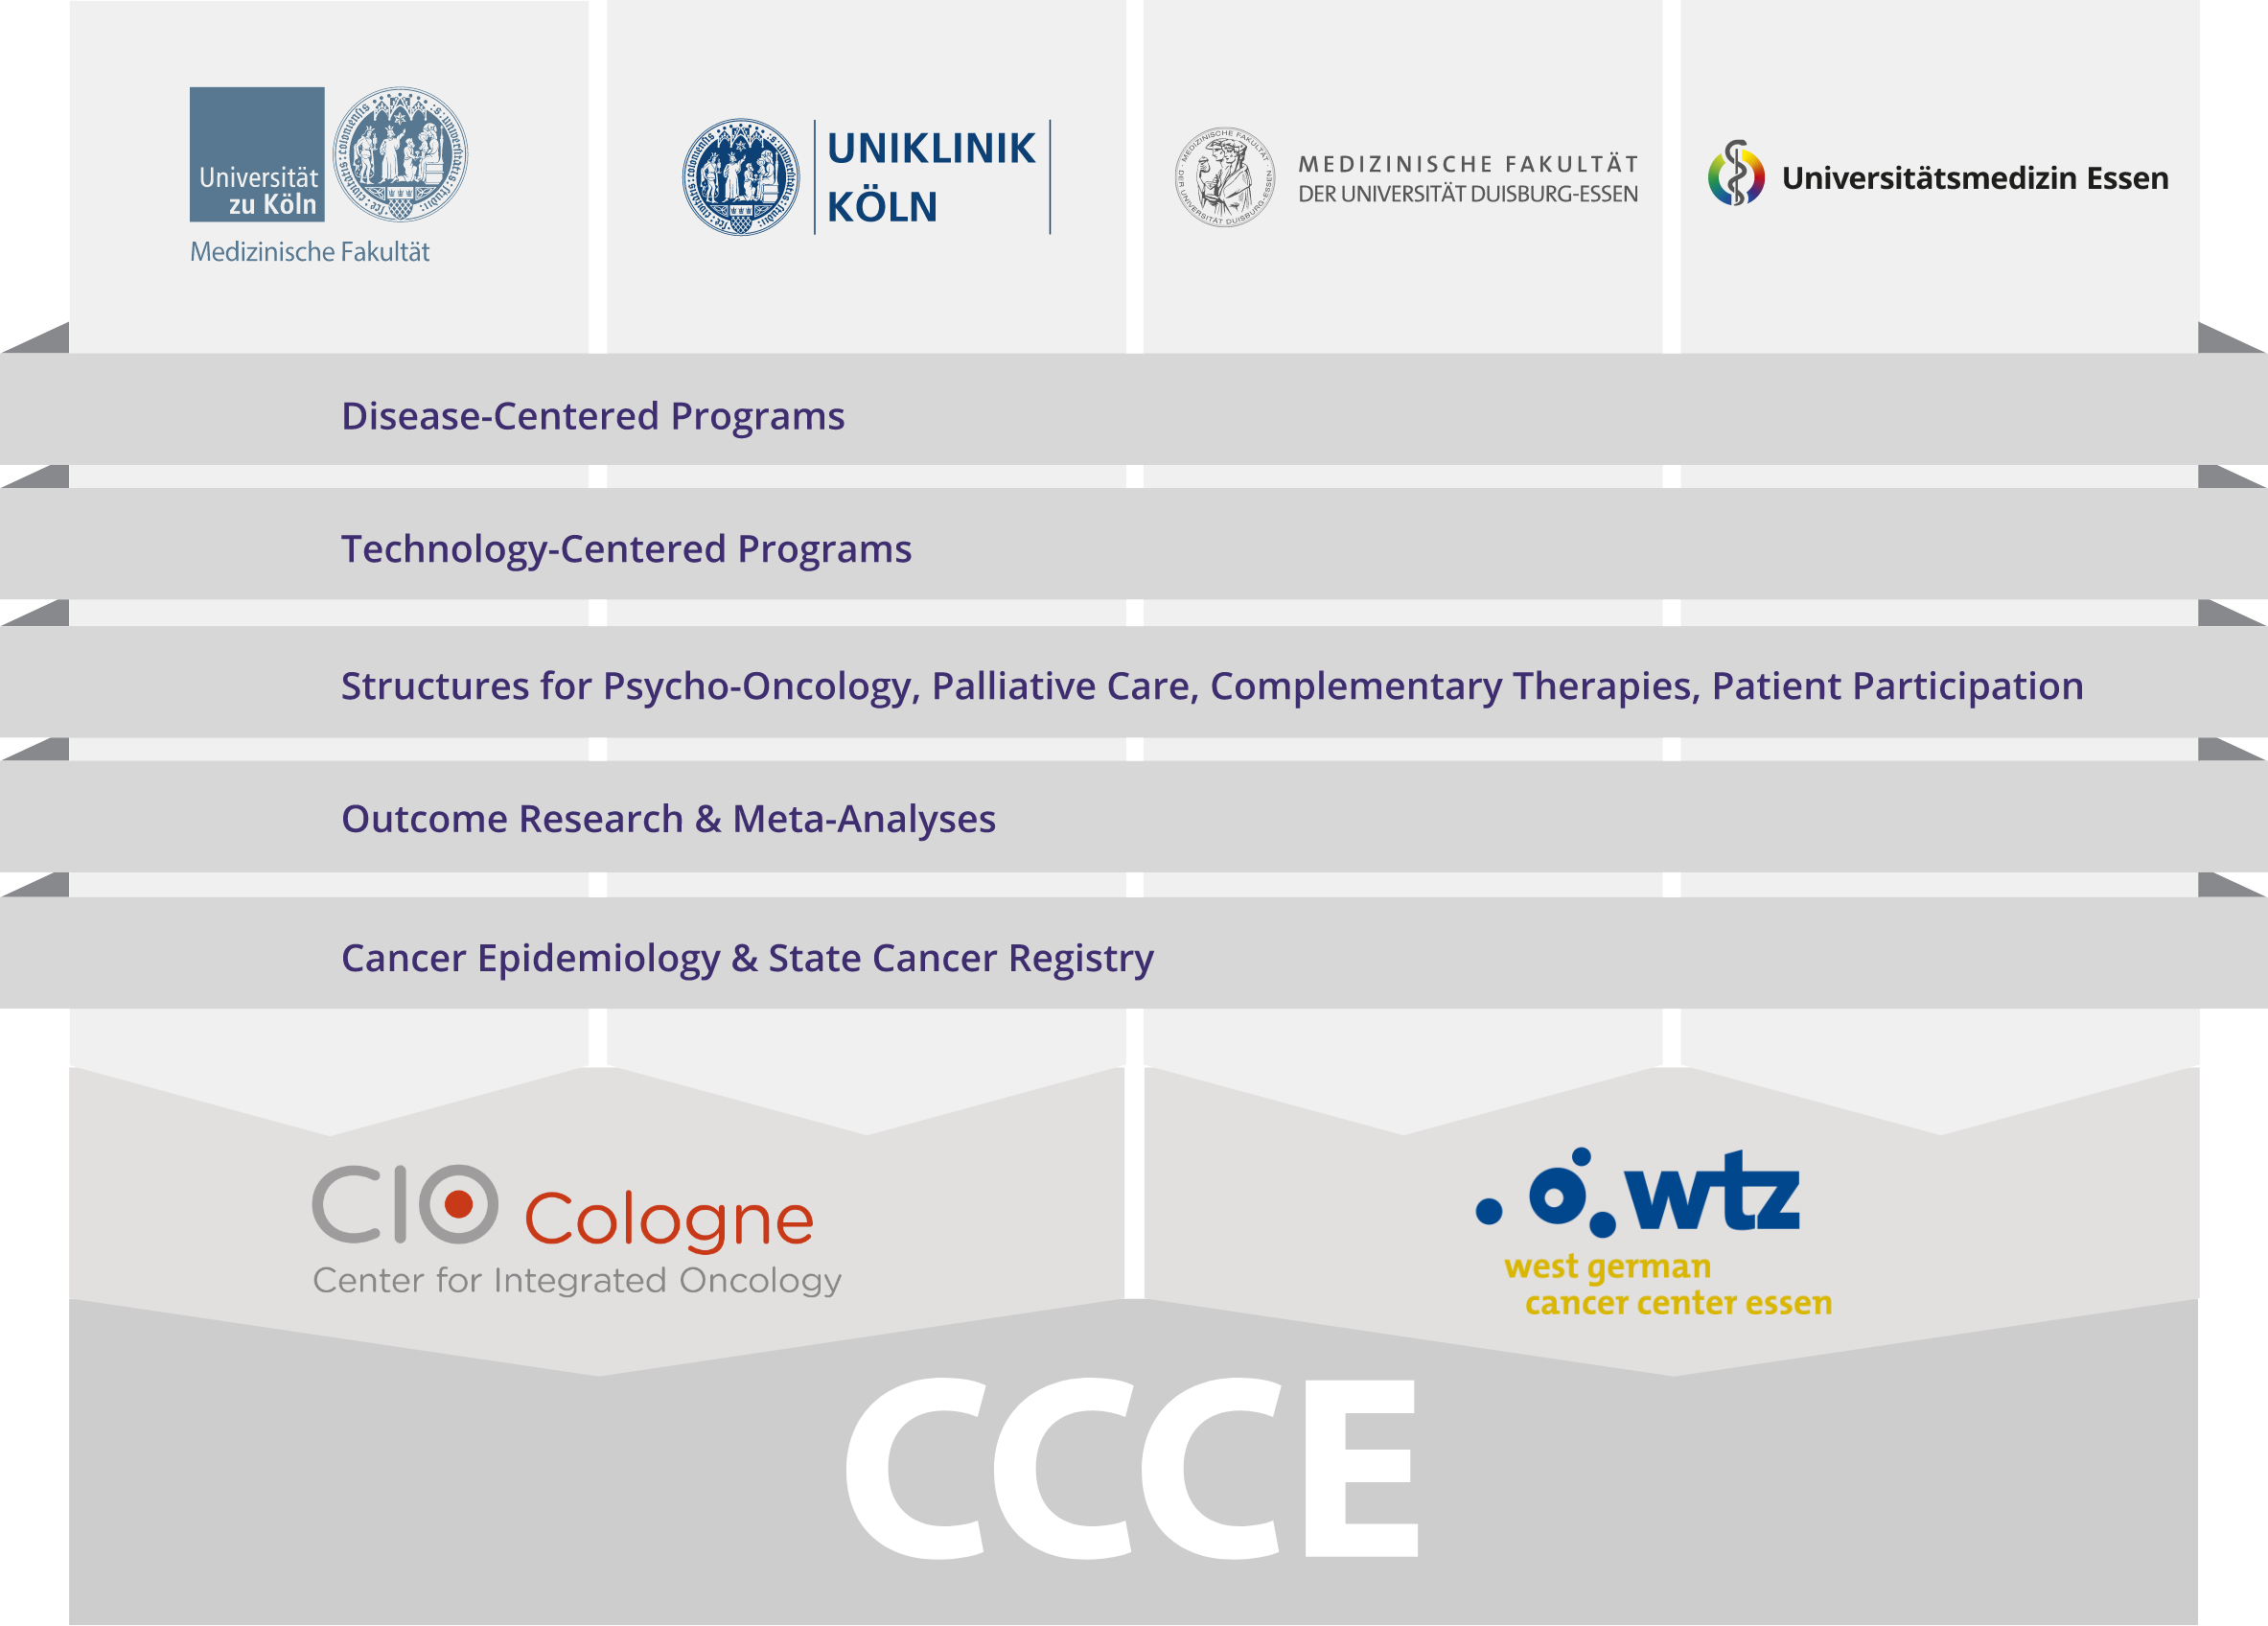 ccce structure